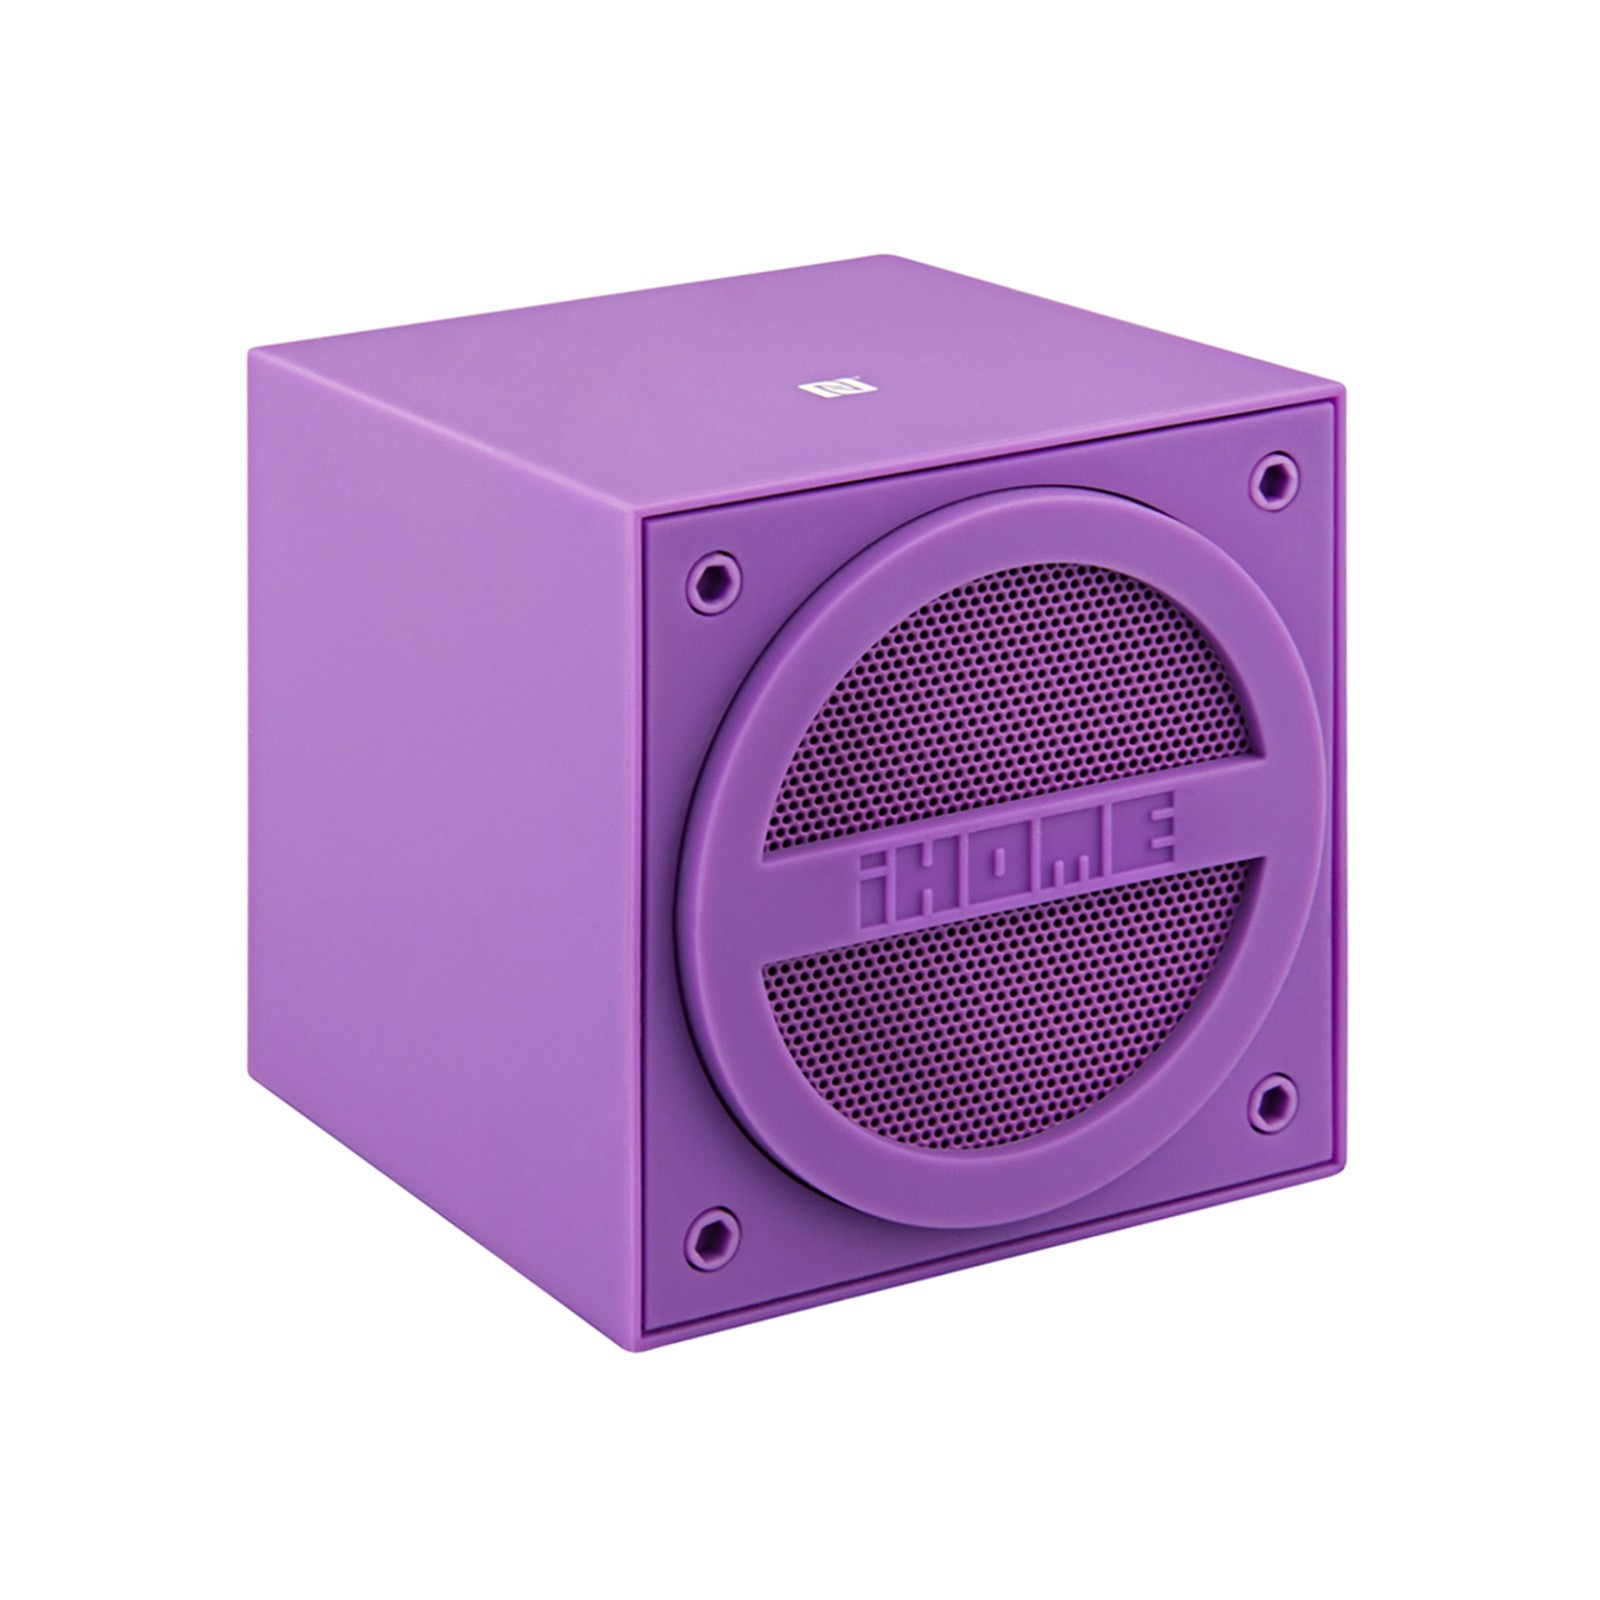 IHome IBT16 Portable Rechargeable Bluetooth Speaker With 3.5mm Jack / Line Out